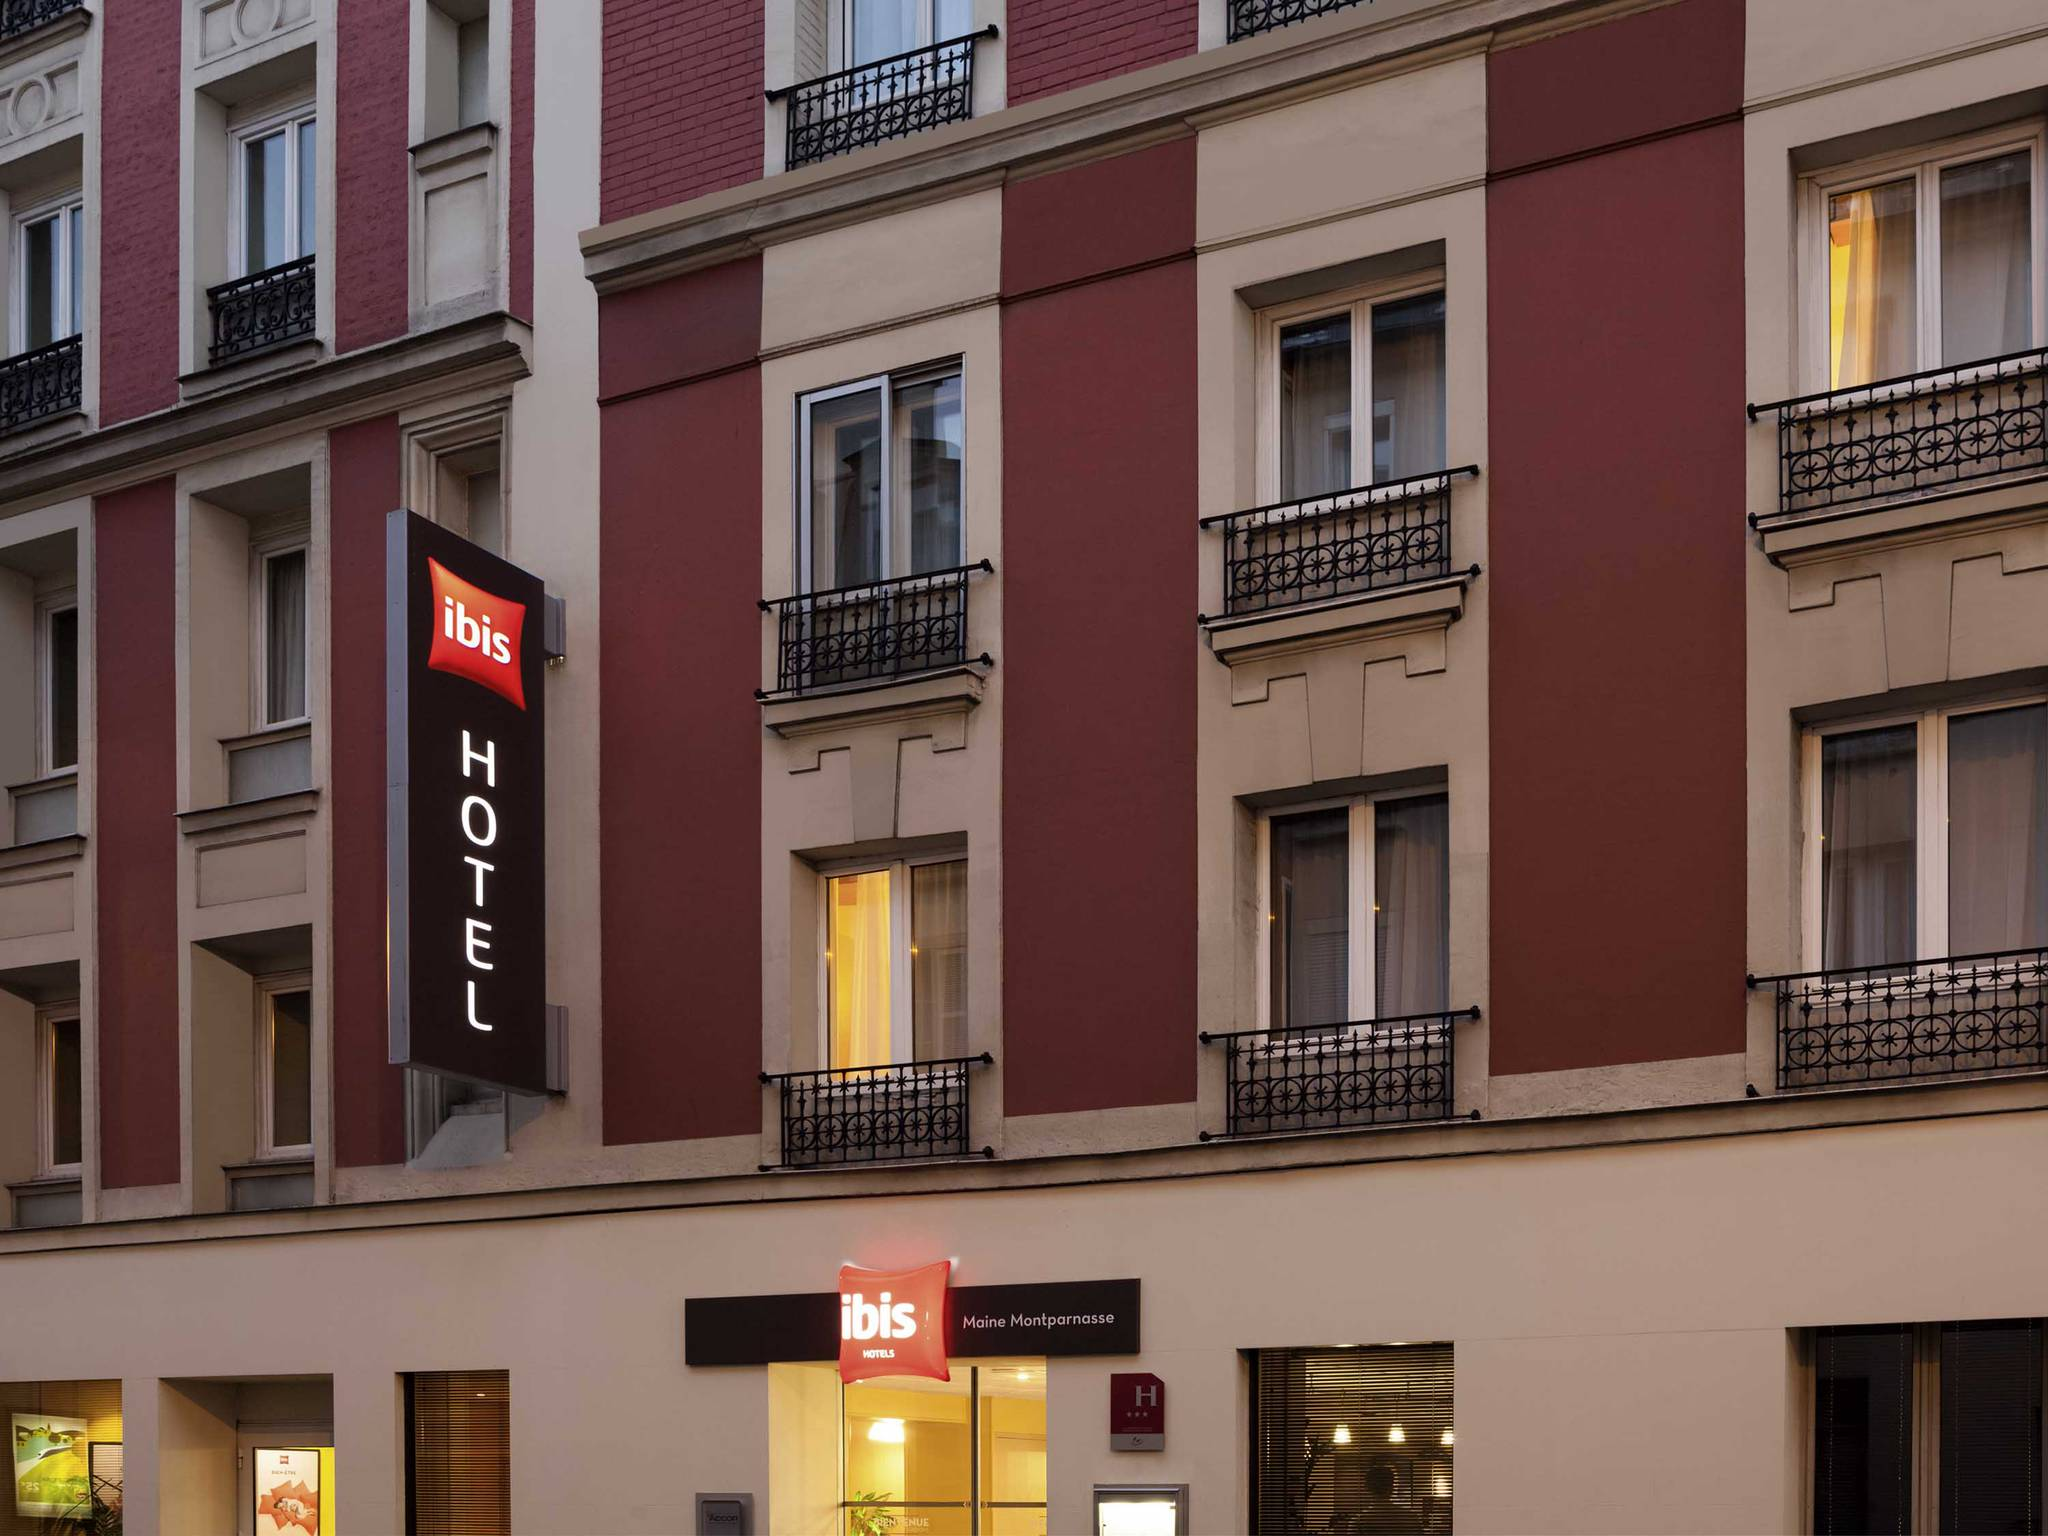 Hotel Ibis Paris Maine Montparne 14th